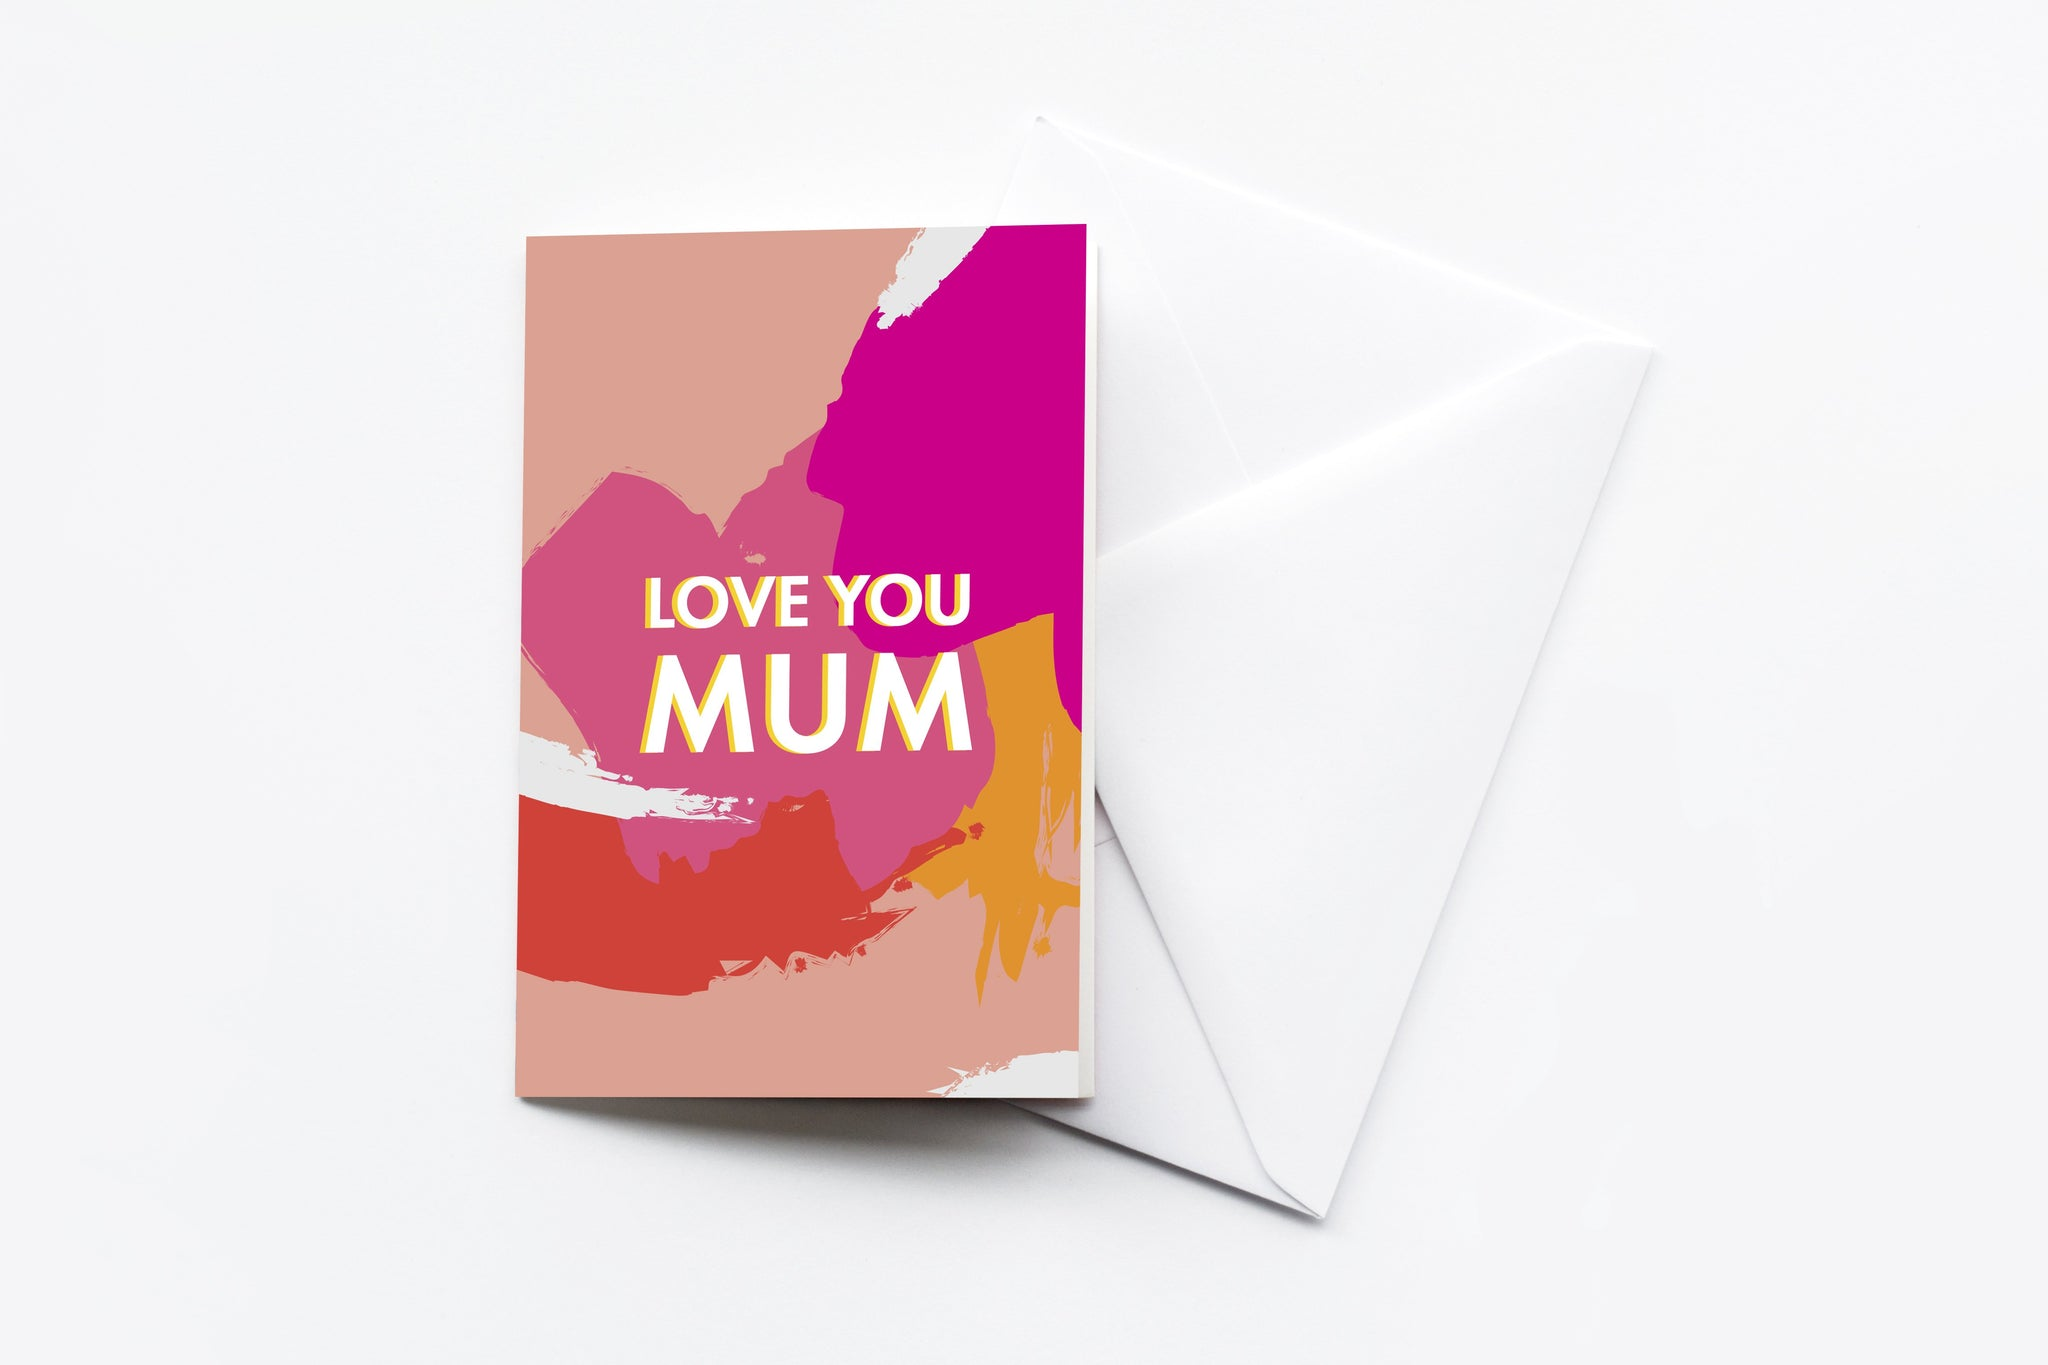 'Love You Mum' Card